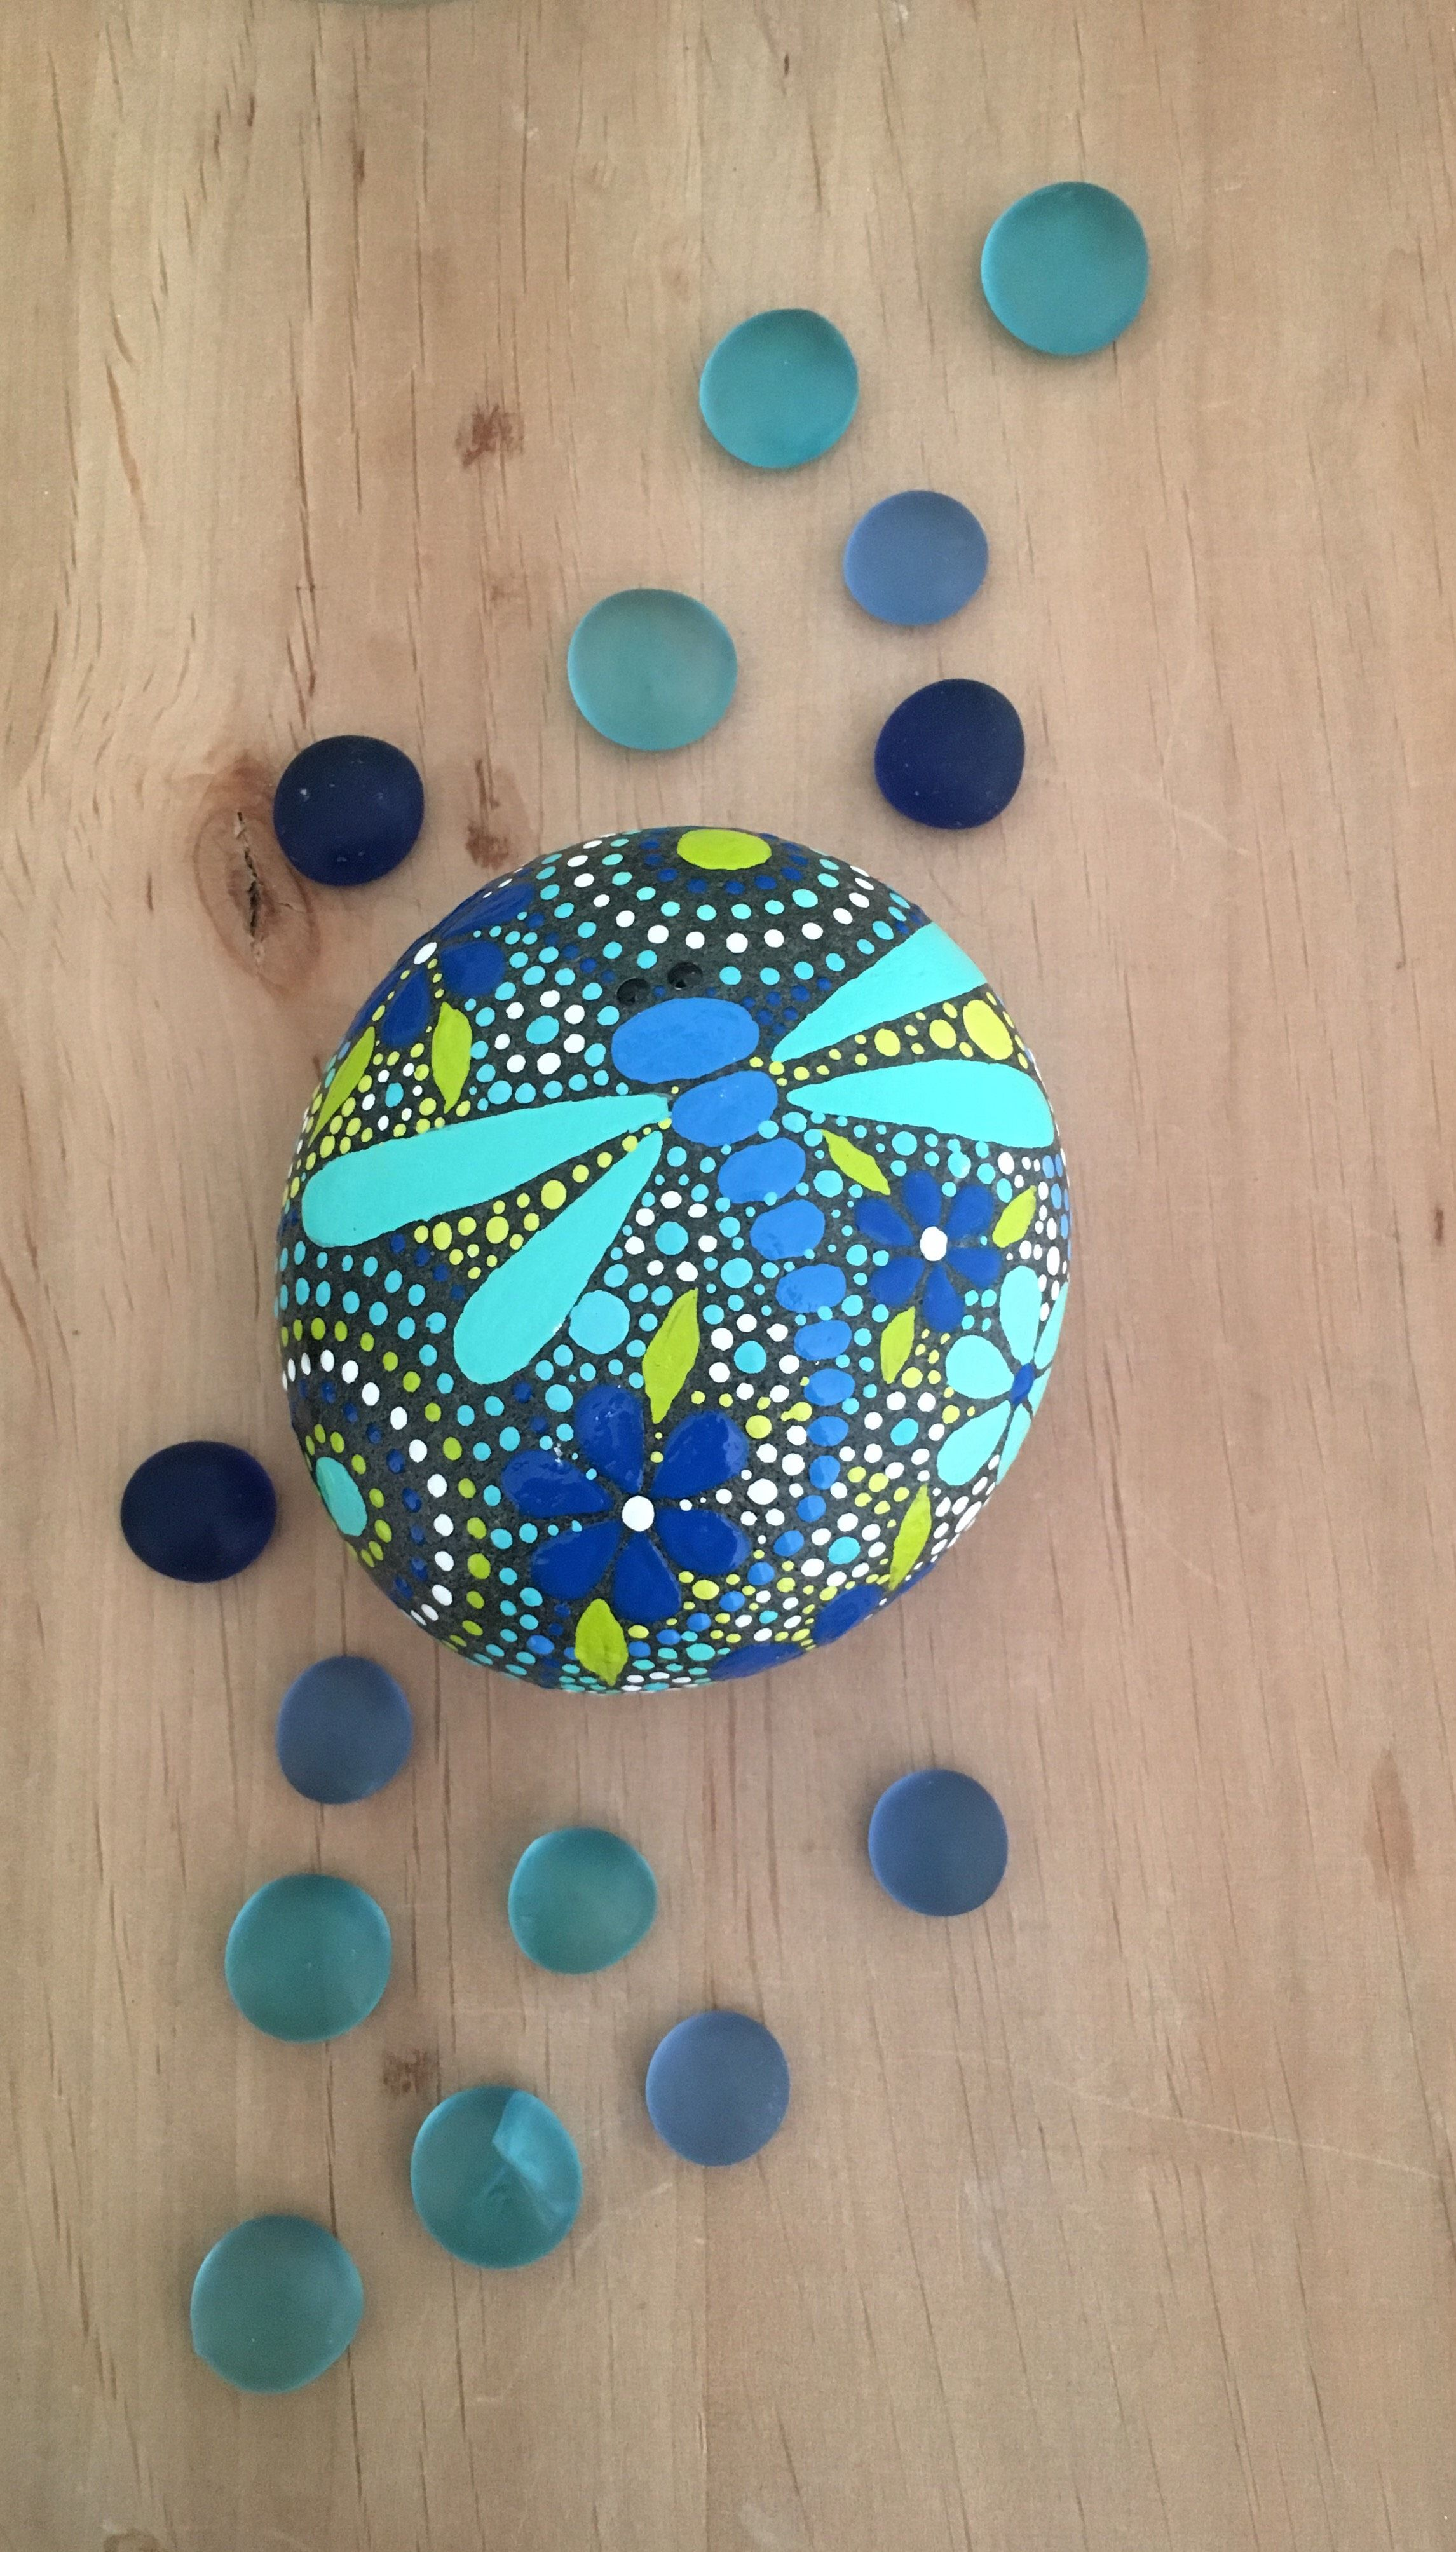 Dragonfly arts and crafts - Rock Art Dragonfly Design Dragonfly Art Hand Painted Rocks Painted Stone